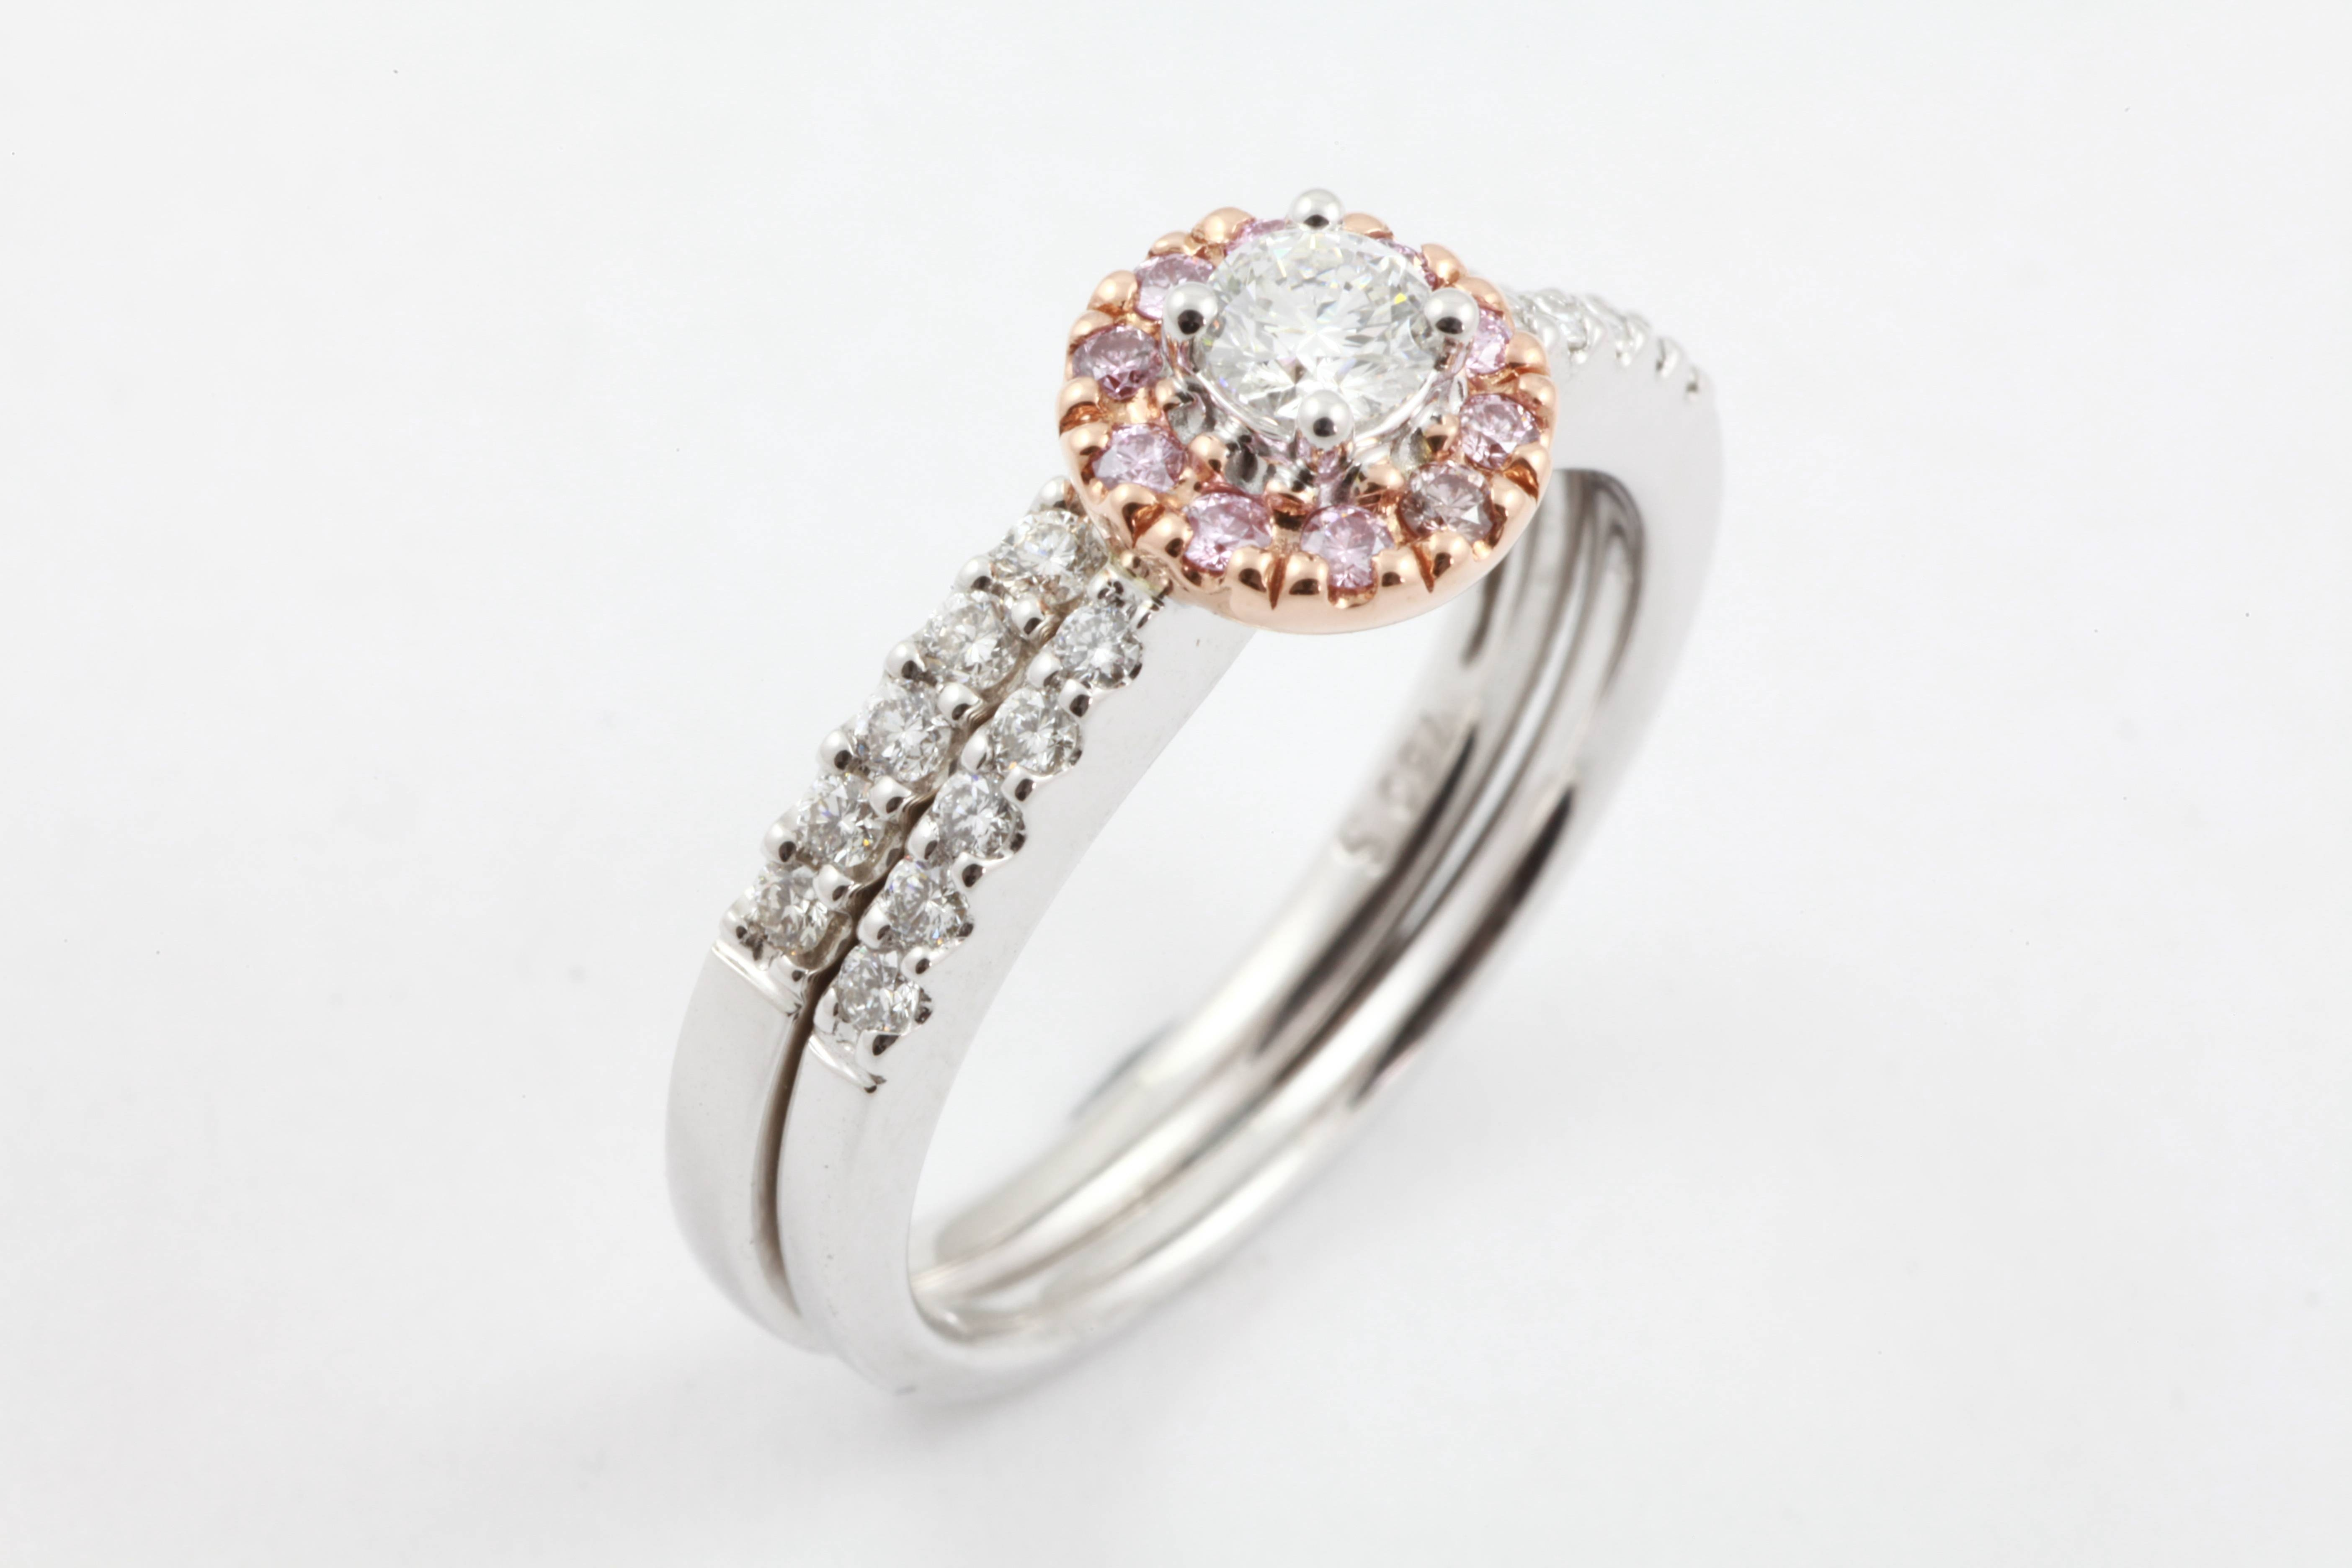 Wedding Bands | Gold River Jewellers Within Recent Pink And Diamond Wedding Bands (View 12 of 15)